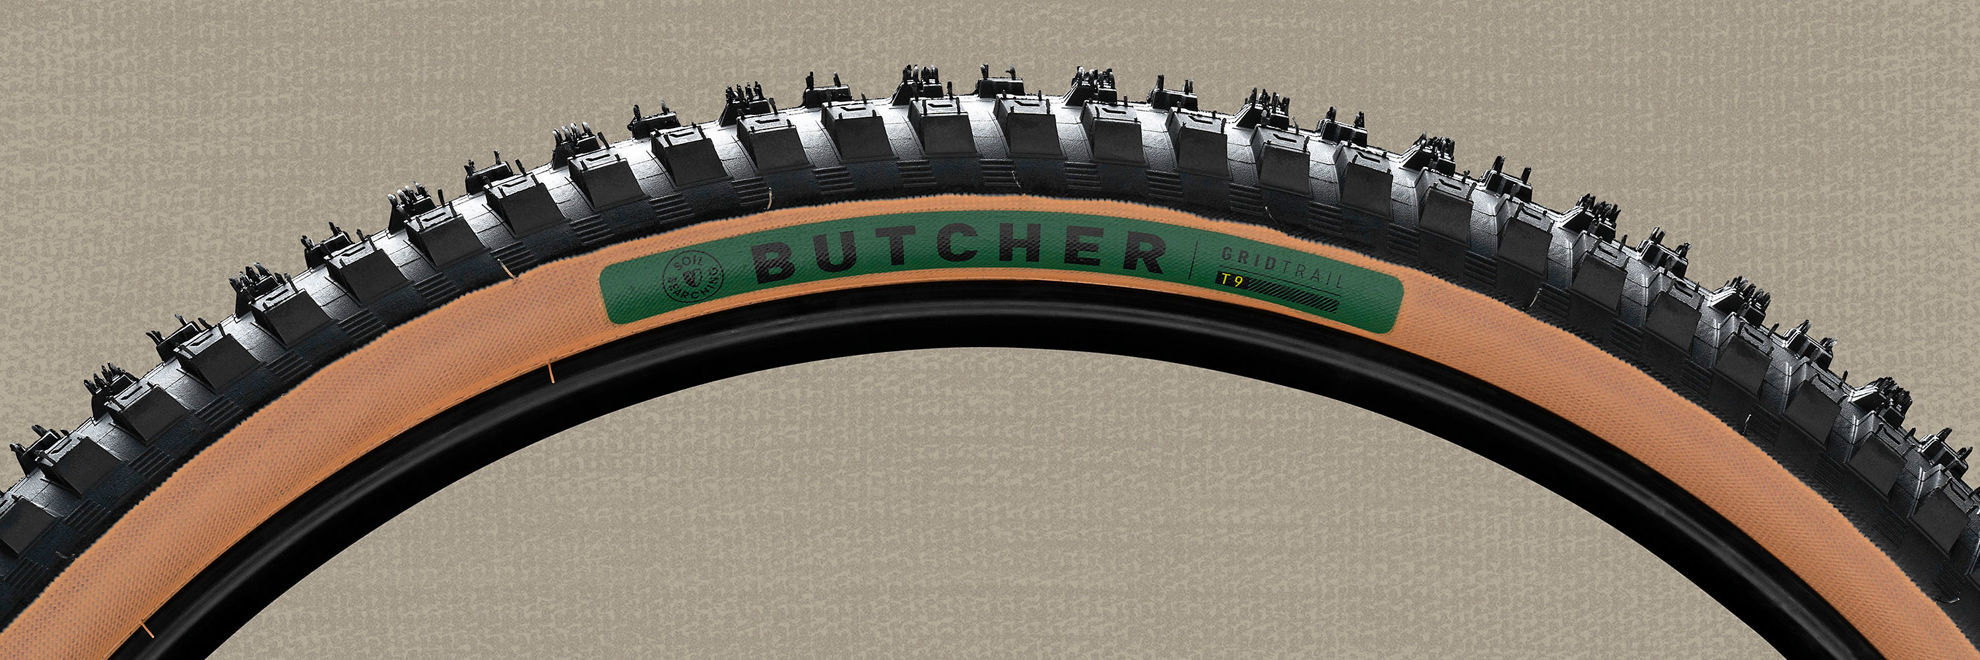 Immagine di SPECIALIZED PNEUMATICO Butcher Grid Trail 2Bliss Ready T9 Soil Searching